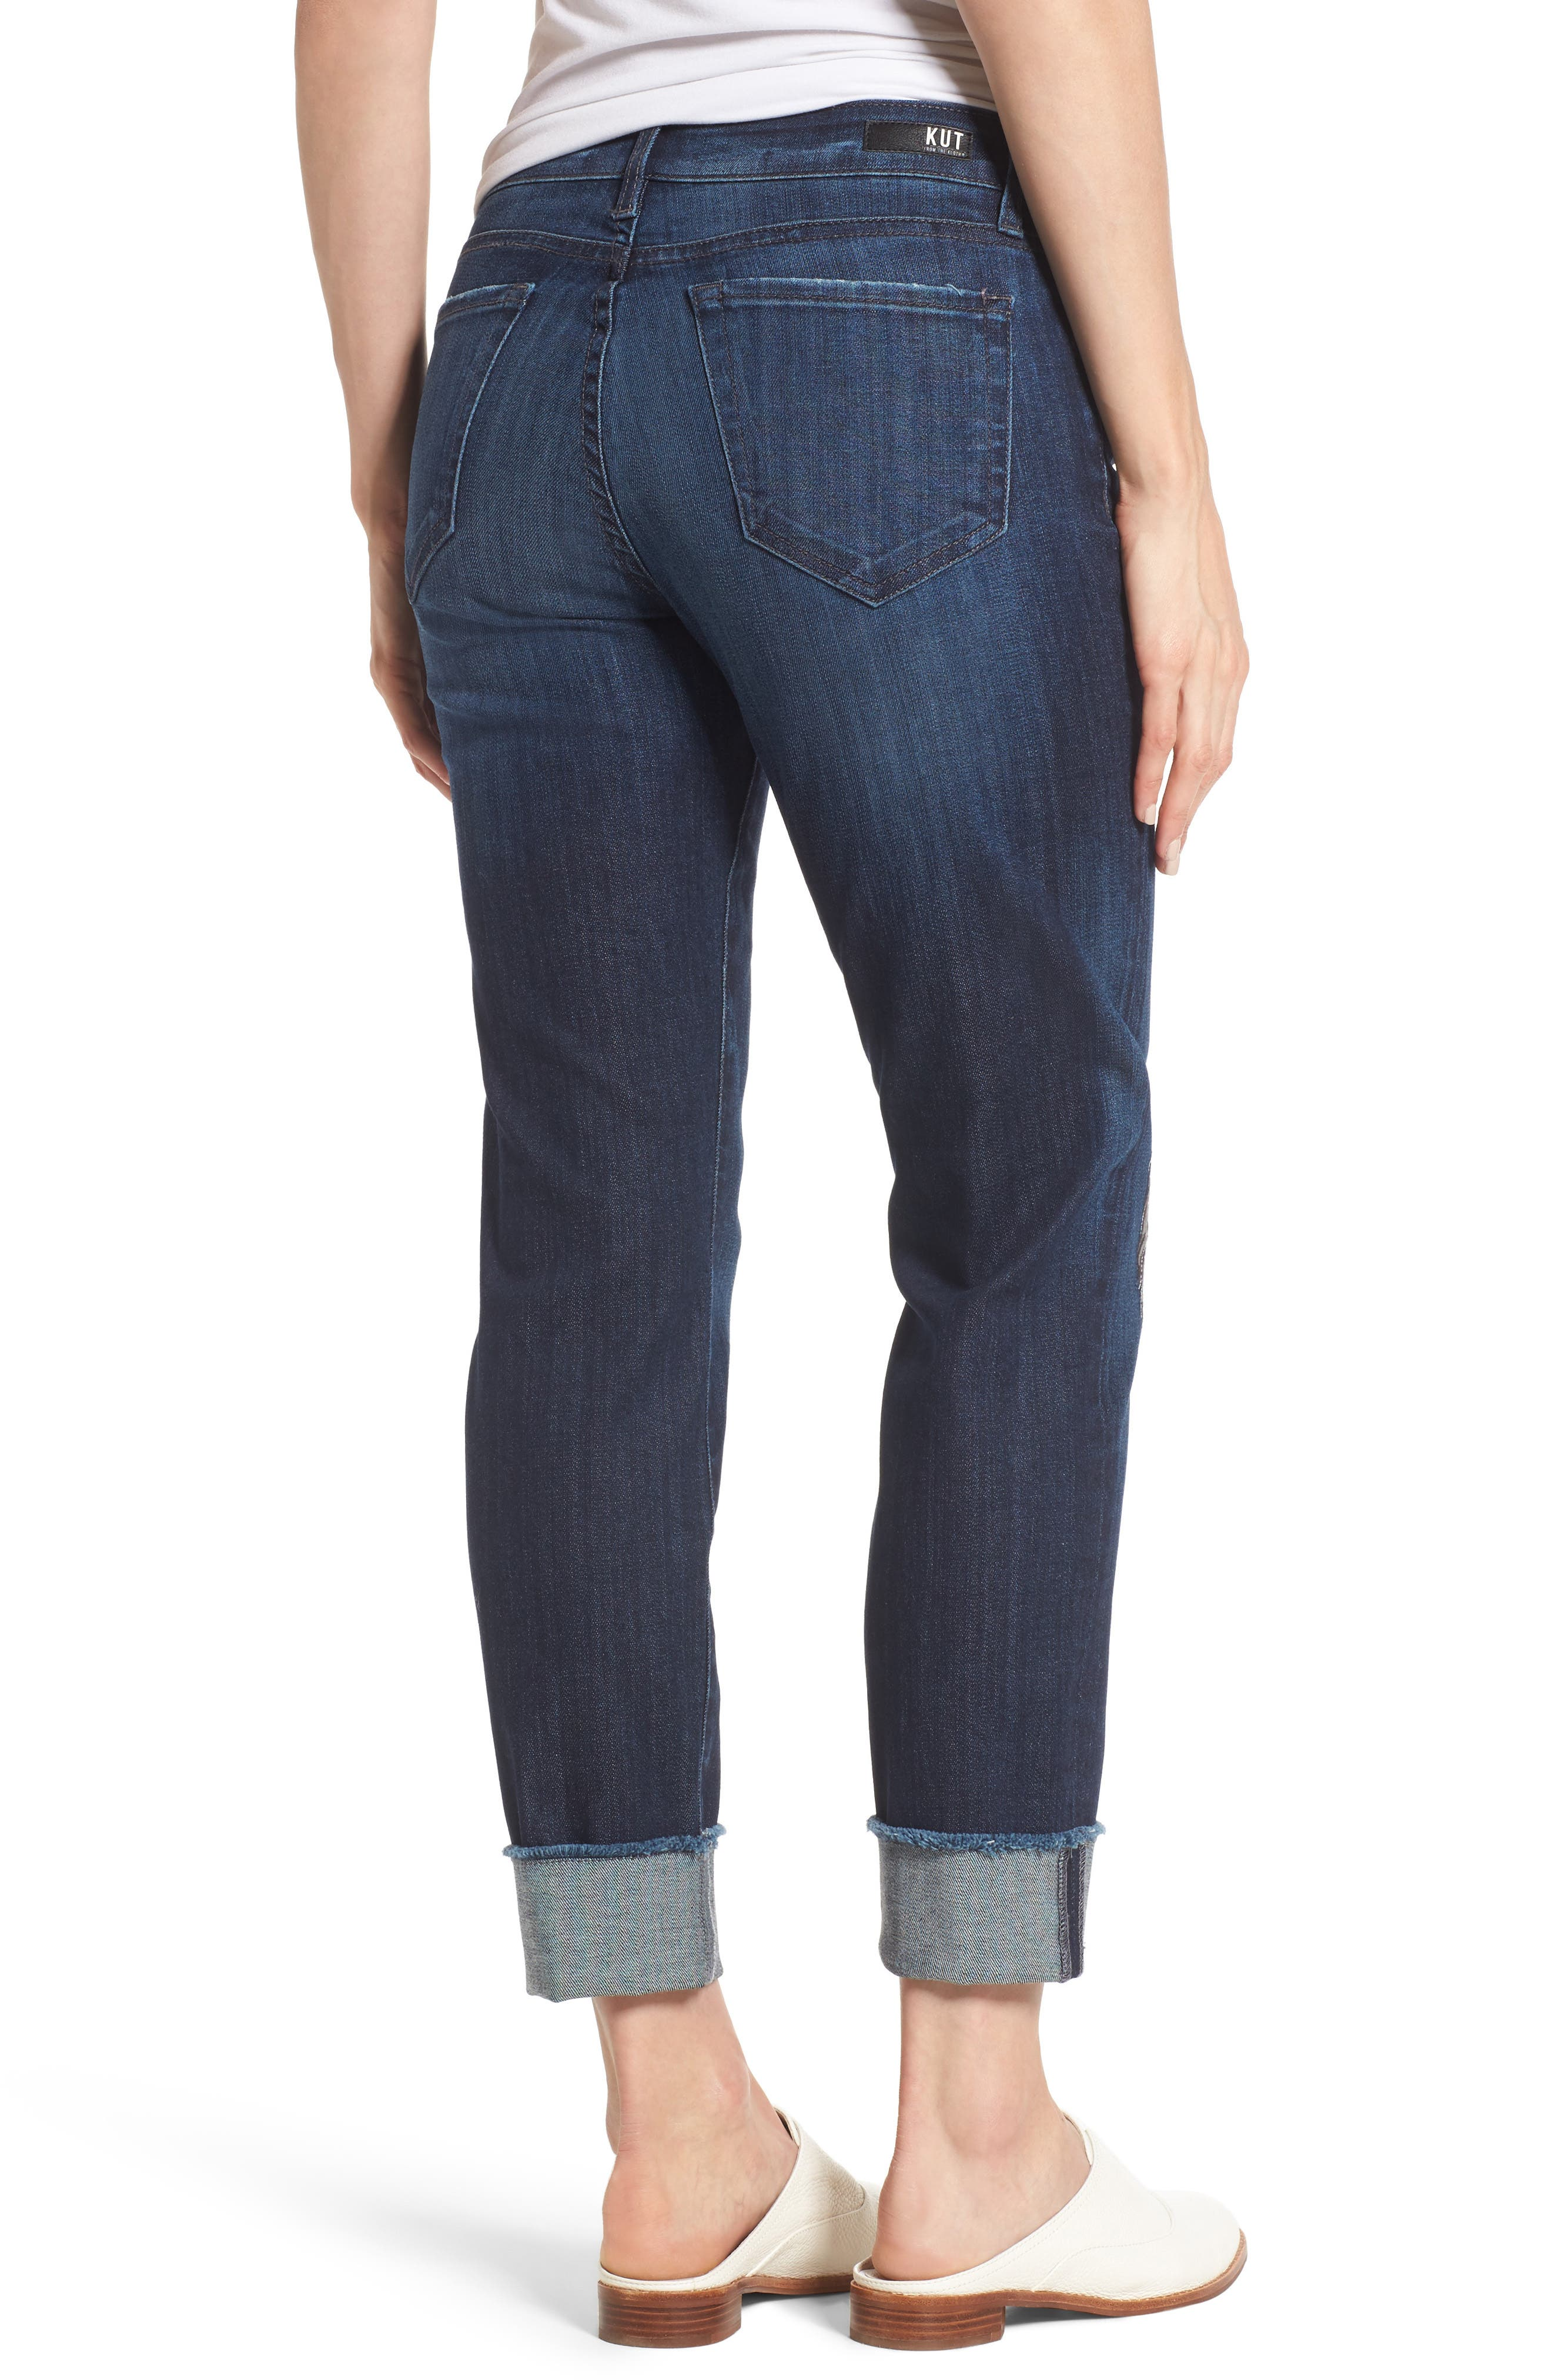 Alternate Image 2  - KUT from the Kloth Amy Cuffed Crop Jeans (Overt)